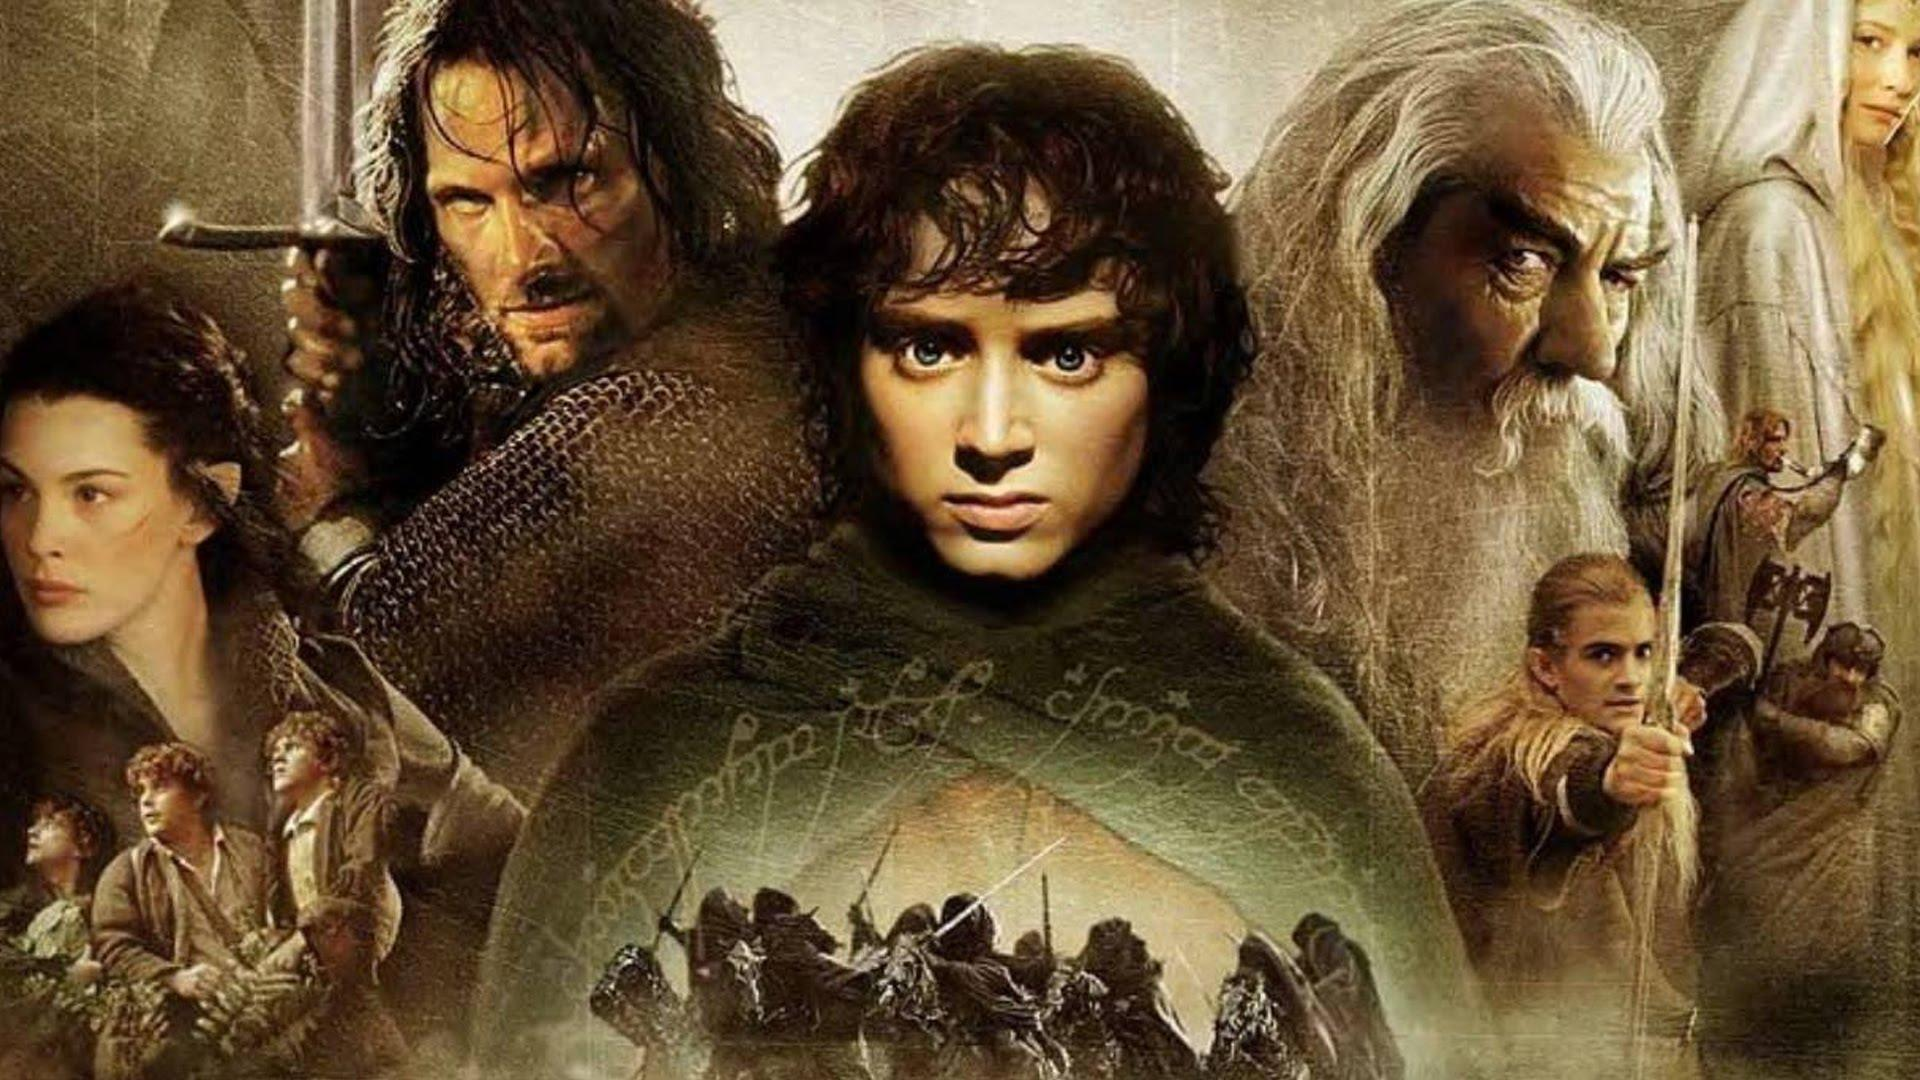 Amazon is Also Developing a Lord of the Rings MMO